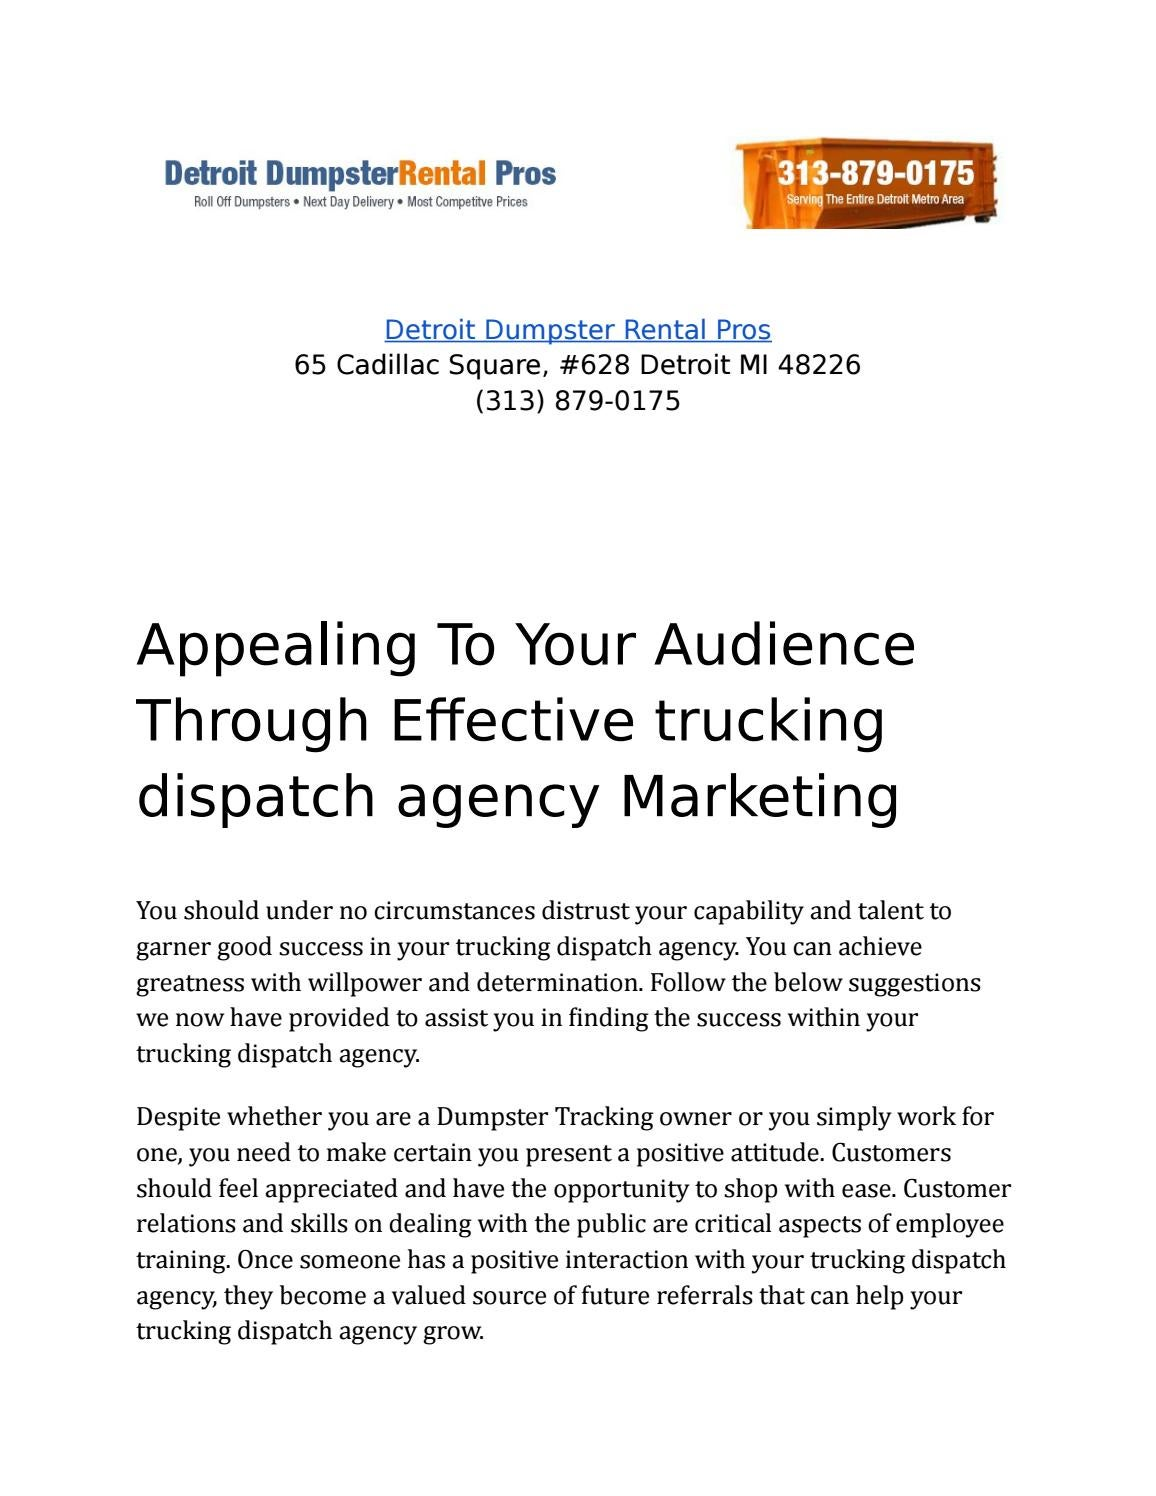 Creative Ways To Develop And Own A Profitable Trucking